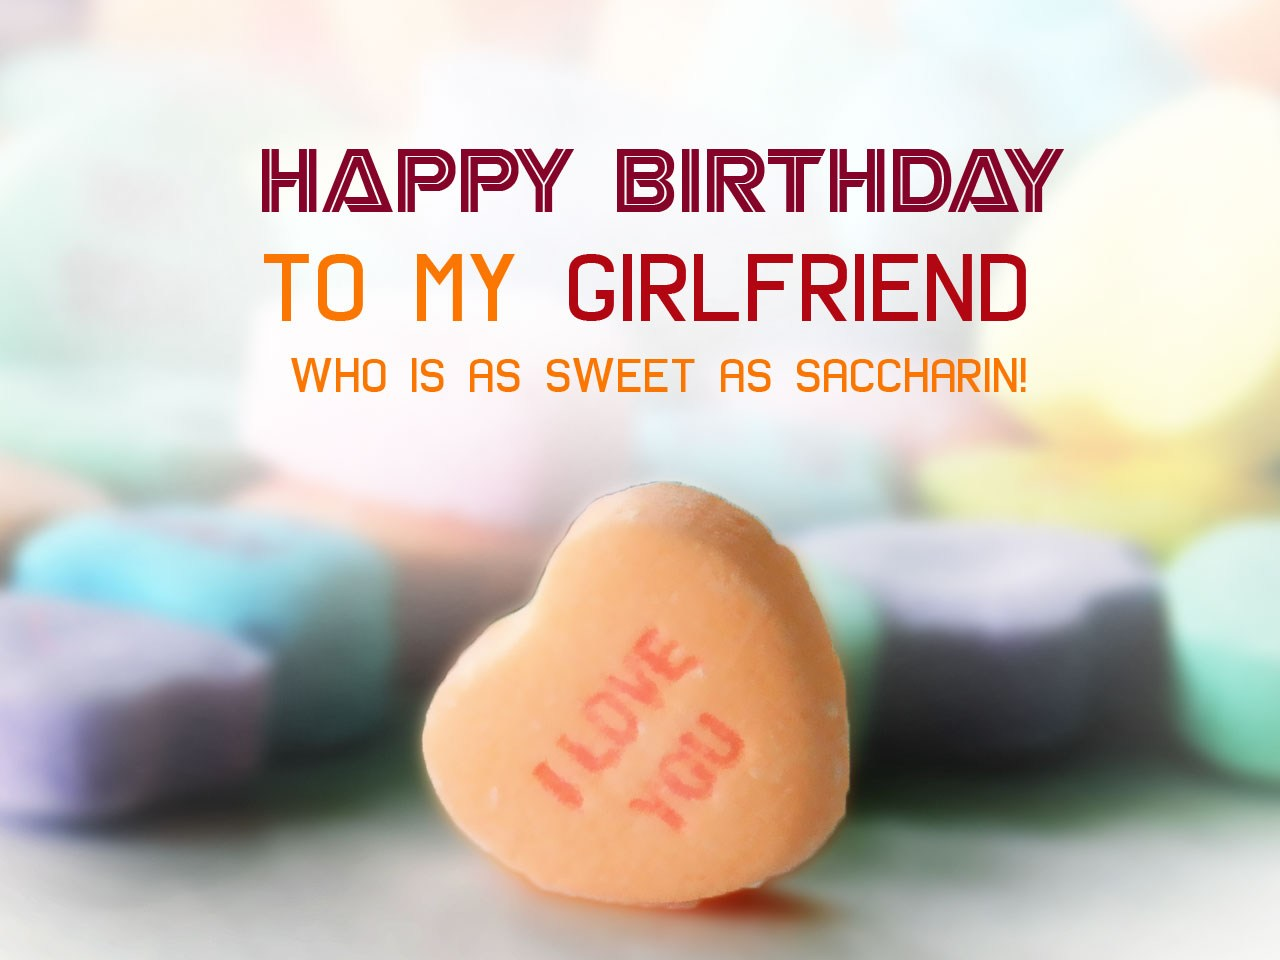 Best Wishes For Birthday Girl Friend : Birthday wishes for girlfriend images pictures